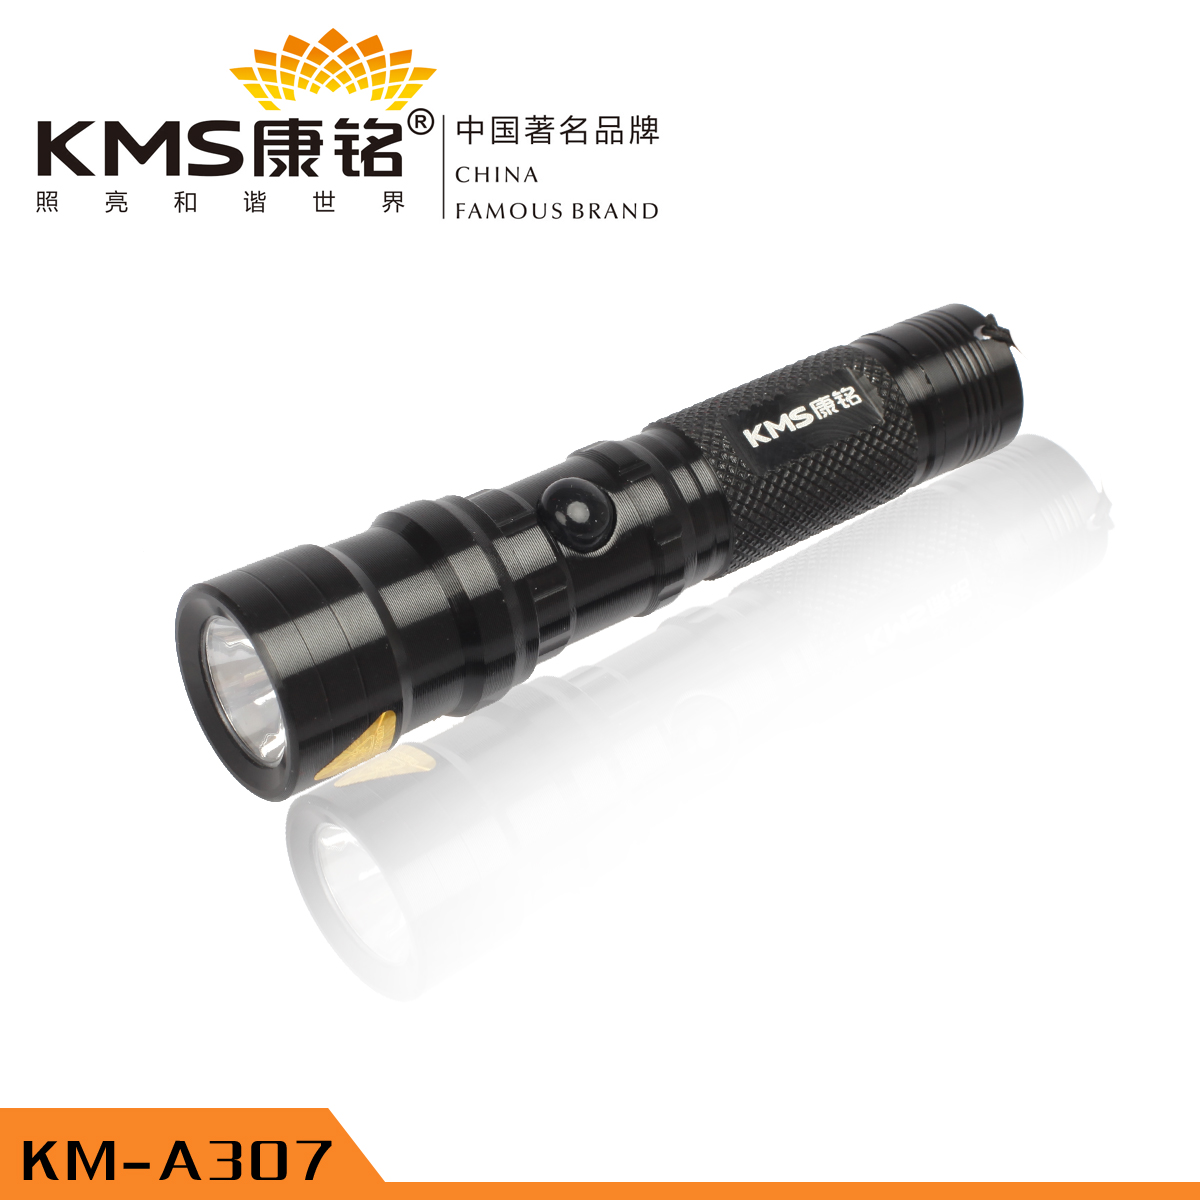 Km-a307 battery cree super bright portable aluminum alloy strong light flashlight(China (Mainland))